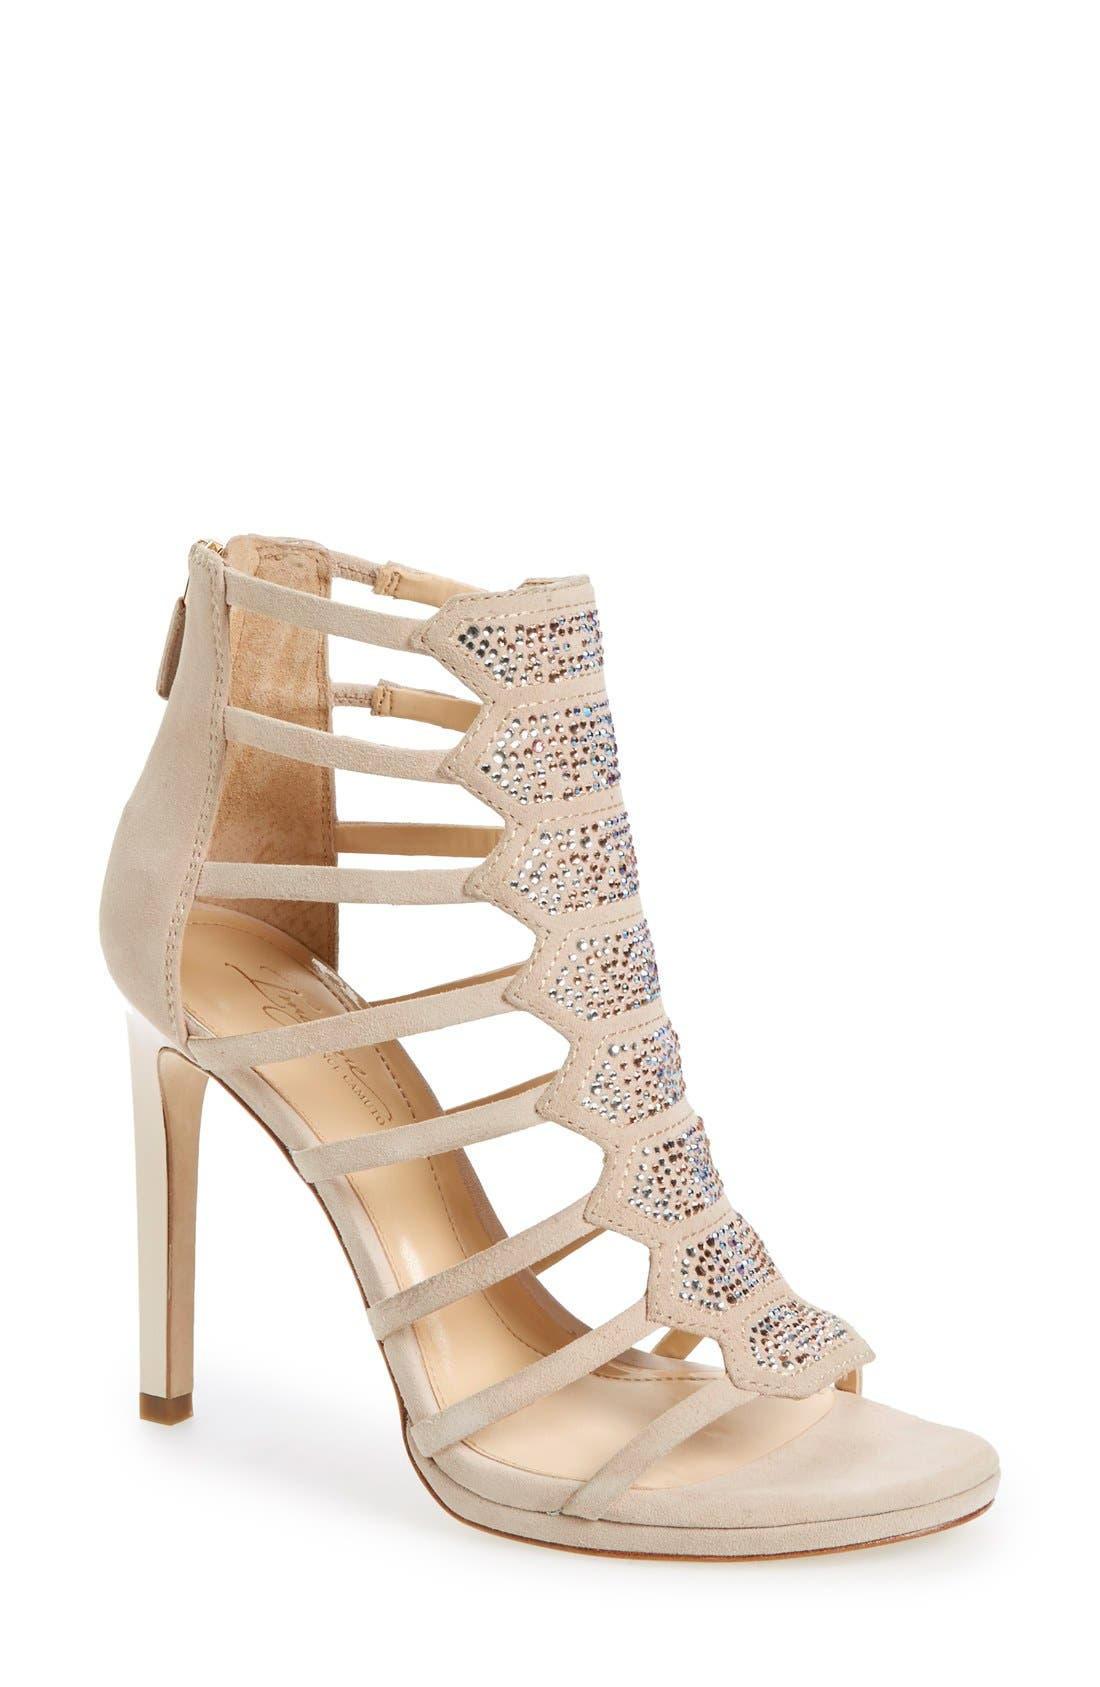 Alternate Image 1 Selected - Imagine Vince Camuto 'Gavin' Embellished Cage Sandal (Women)